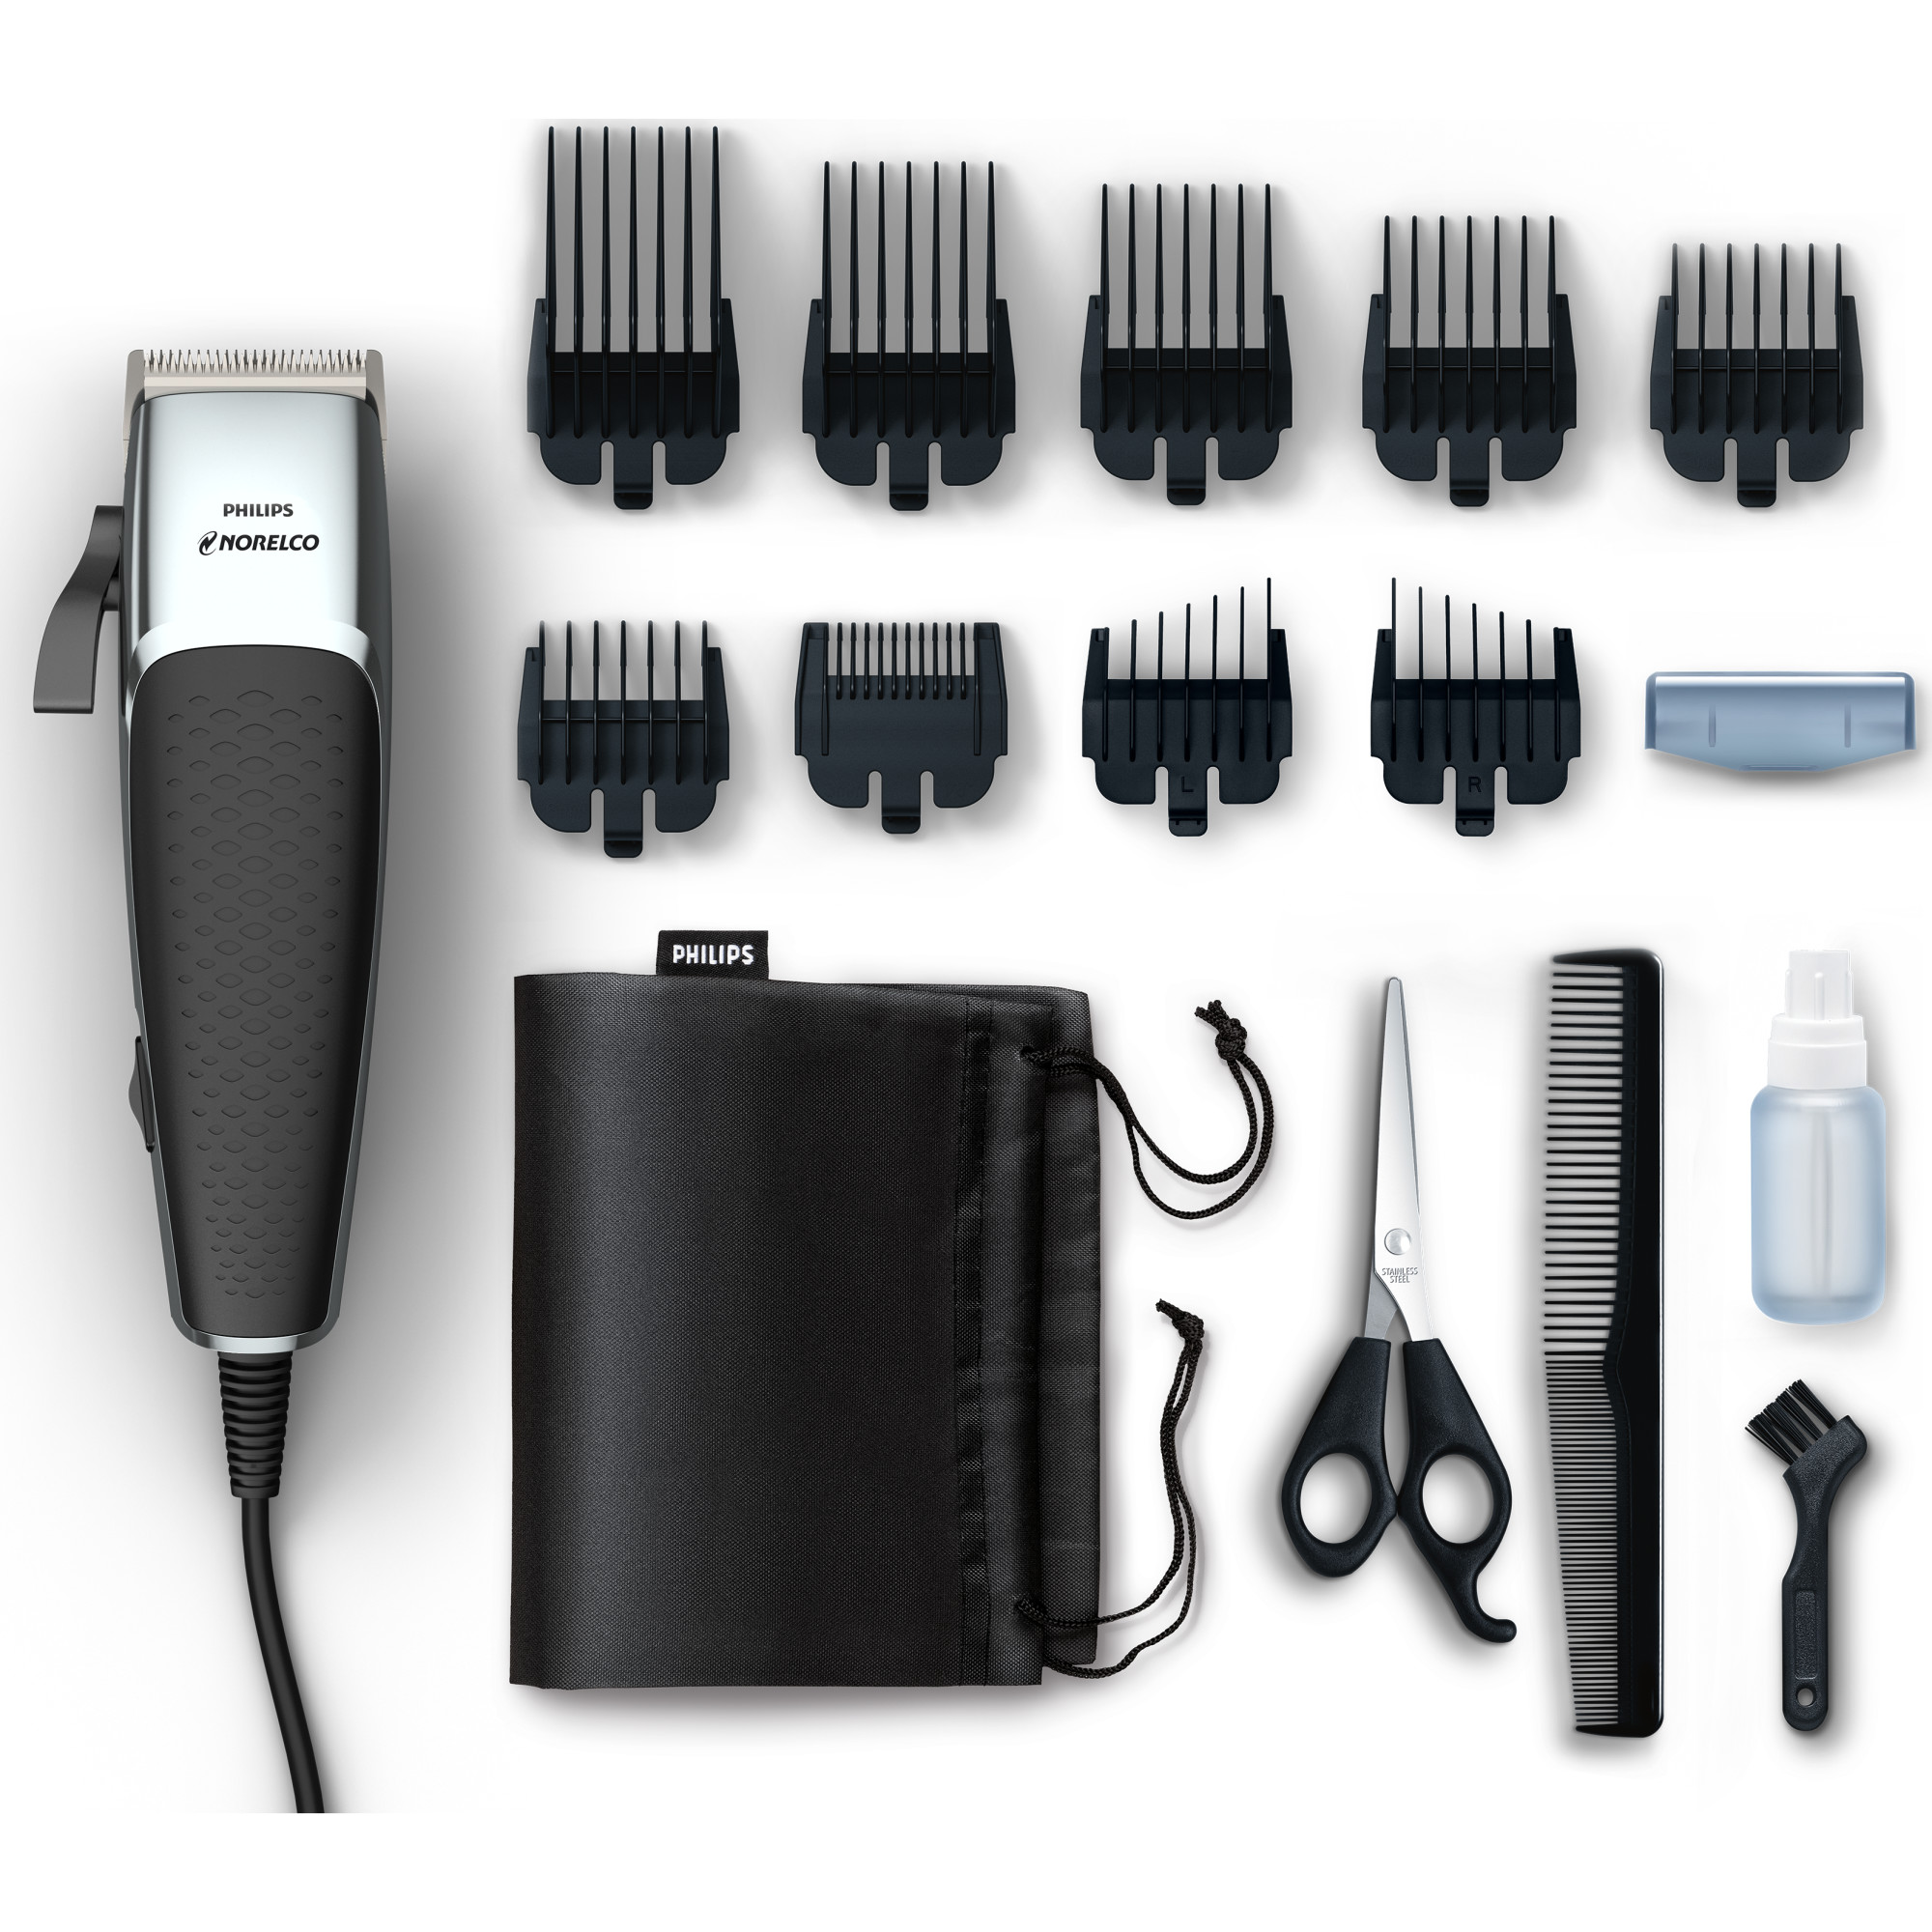 """Philips Norelco Hair Clipper 5000, HC5100/40 - Hair and beard trim kit with 16 pieces, skin friend steel blades, adjustable lever for fades, and 9.1"""" cord."""